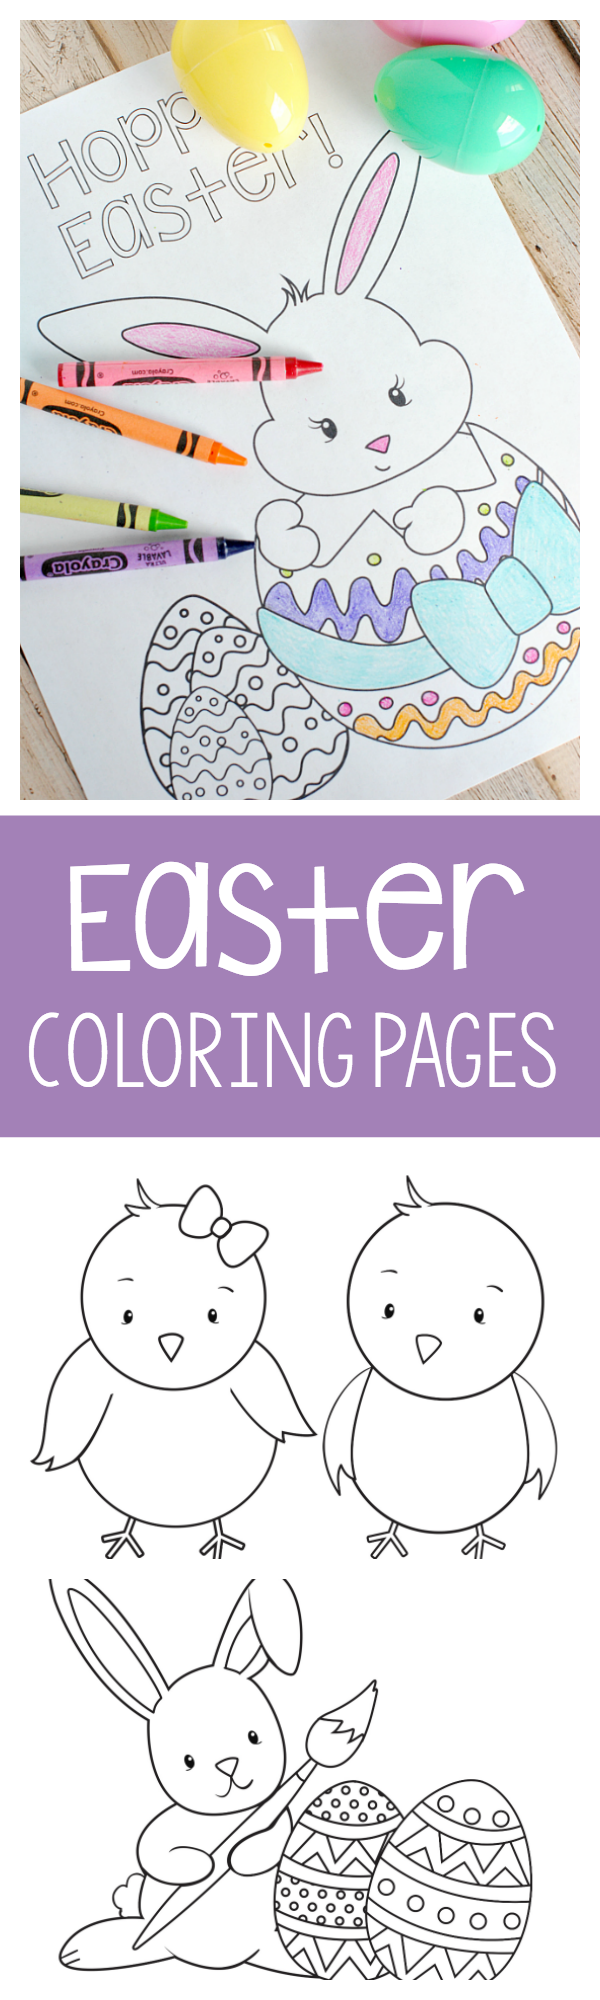 Printable Easter Coloring Pages for Kids-Print and color these cute Easter coloring pages with your kids this Spring! They will love them (and so will you!) #easter #kids #kidscrafts